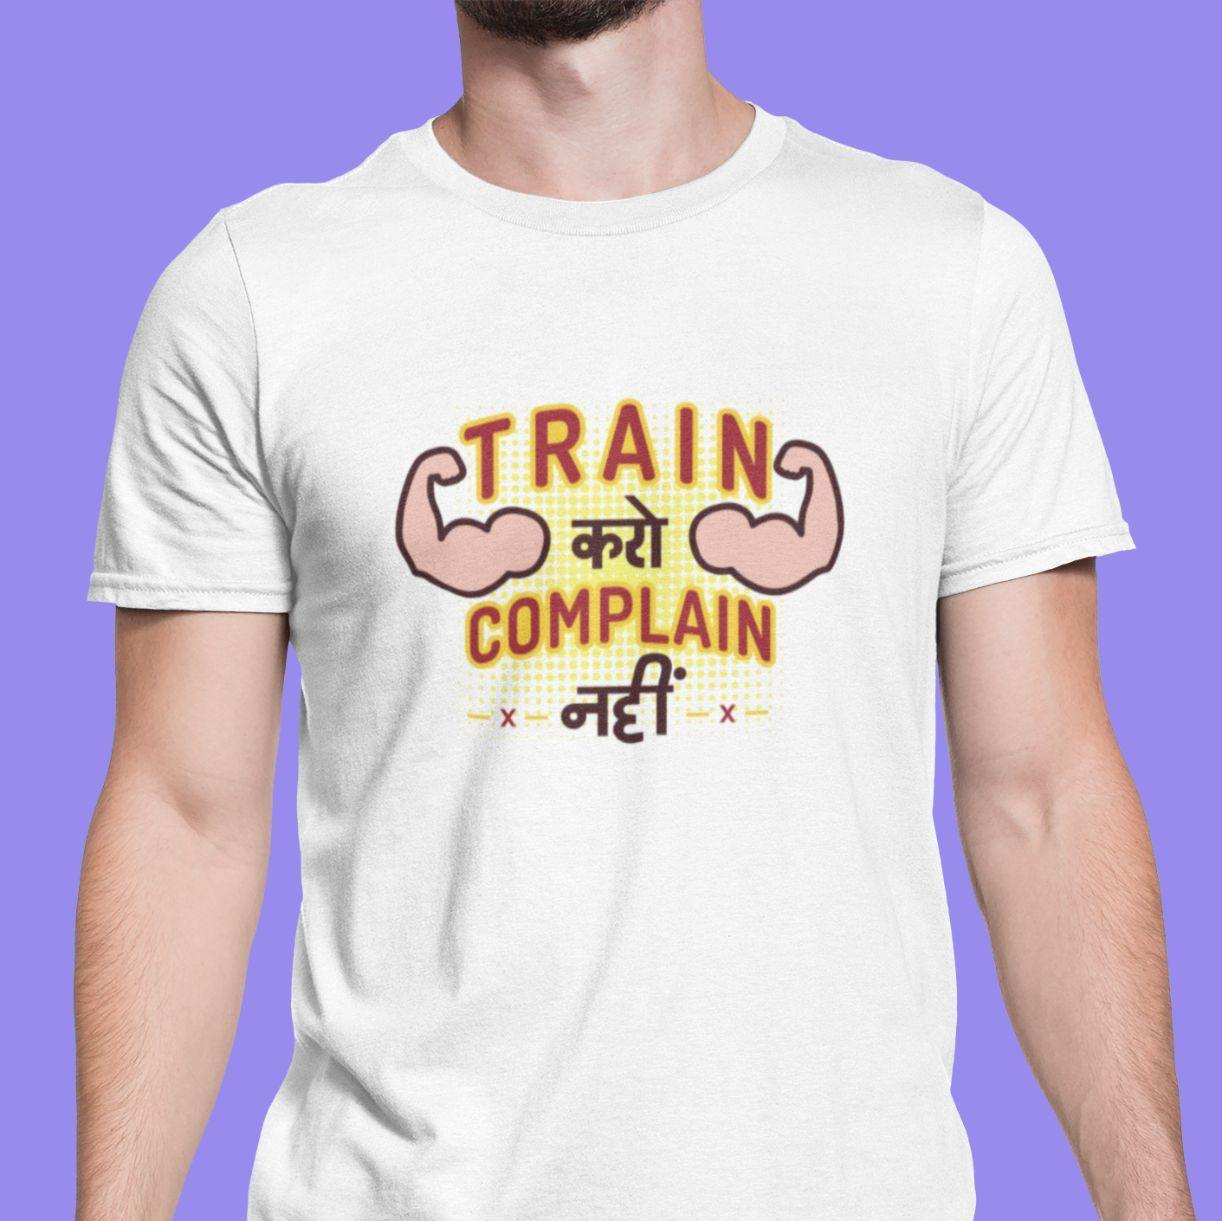 Train Karo, Complain Nahi - Men's Tshirt - Daily Suvichar Store